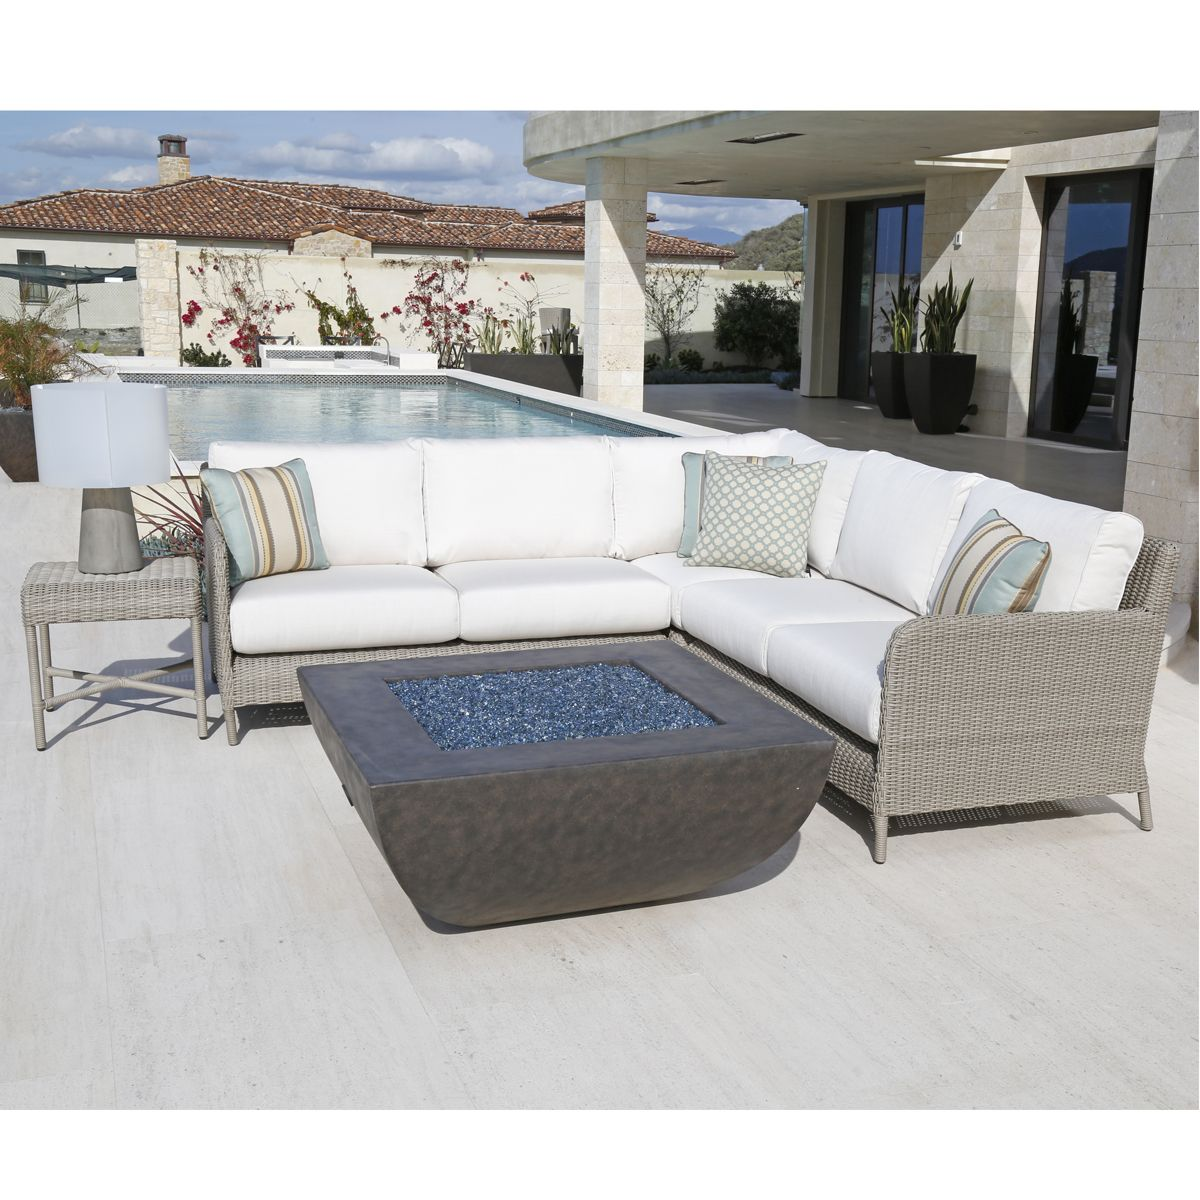 Melrose End Table Sunset West Rattan Corner Sofa Patio Chairs